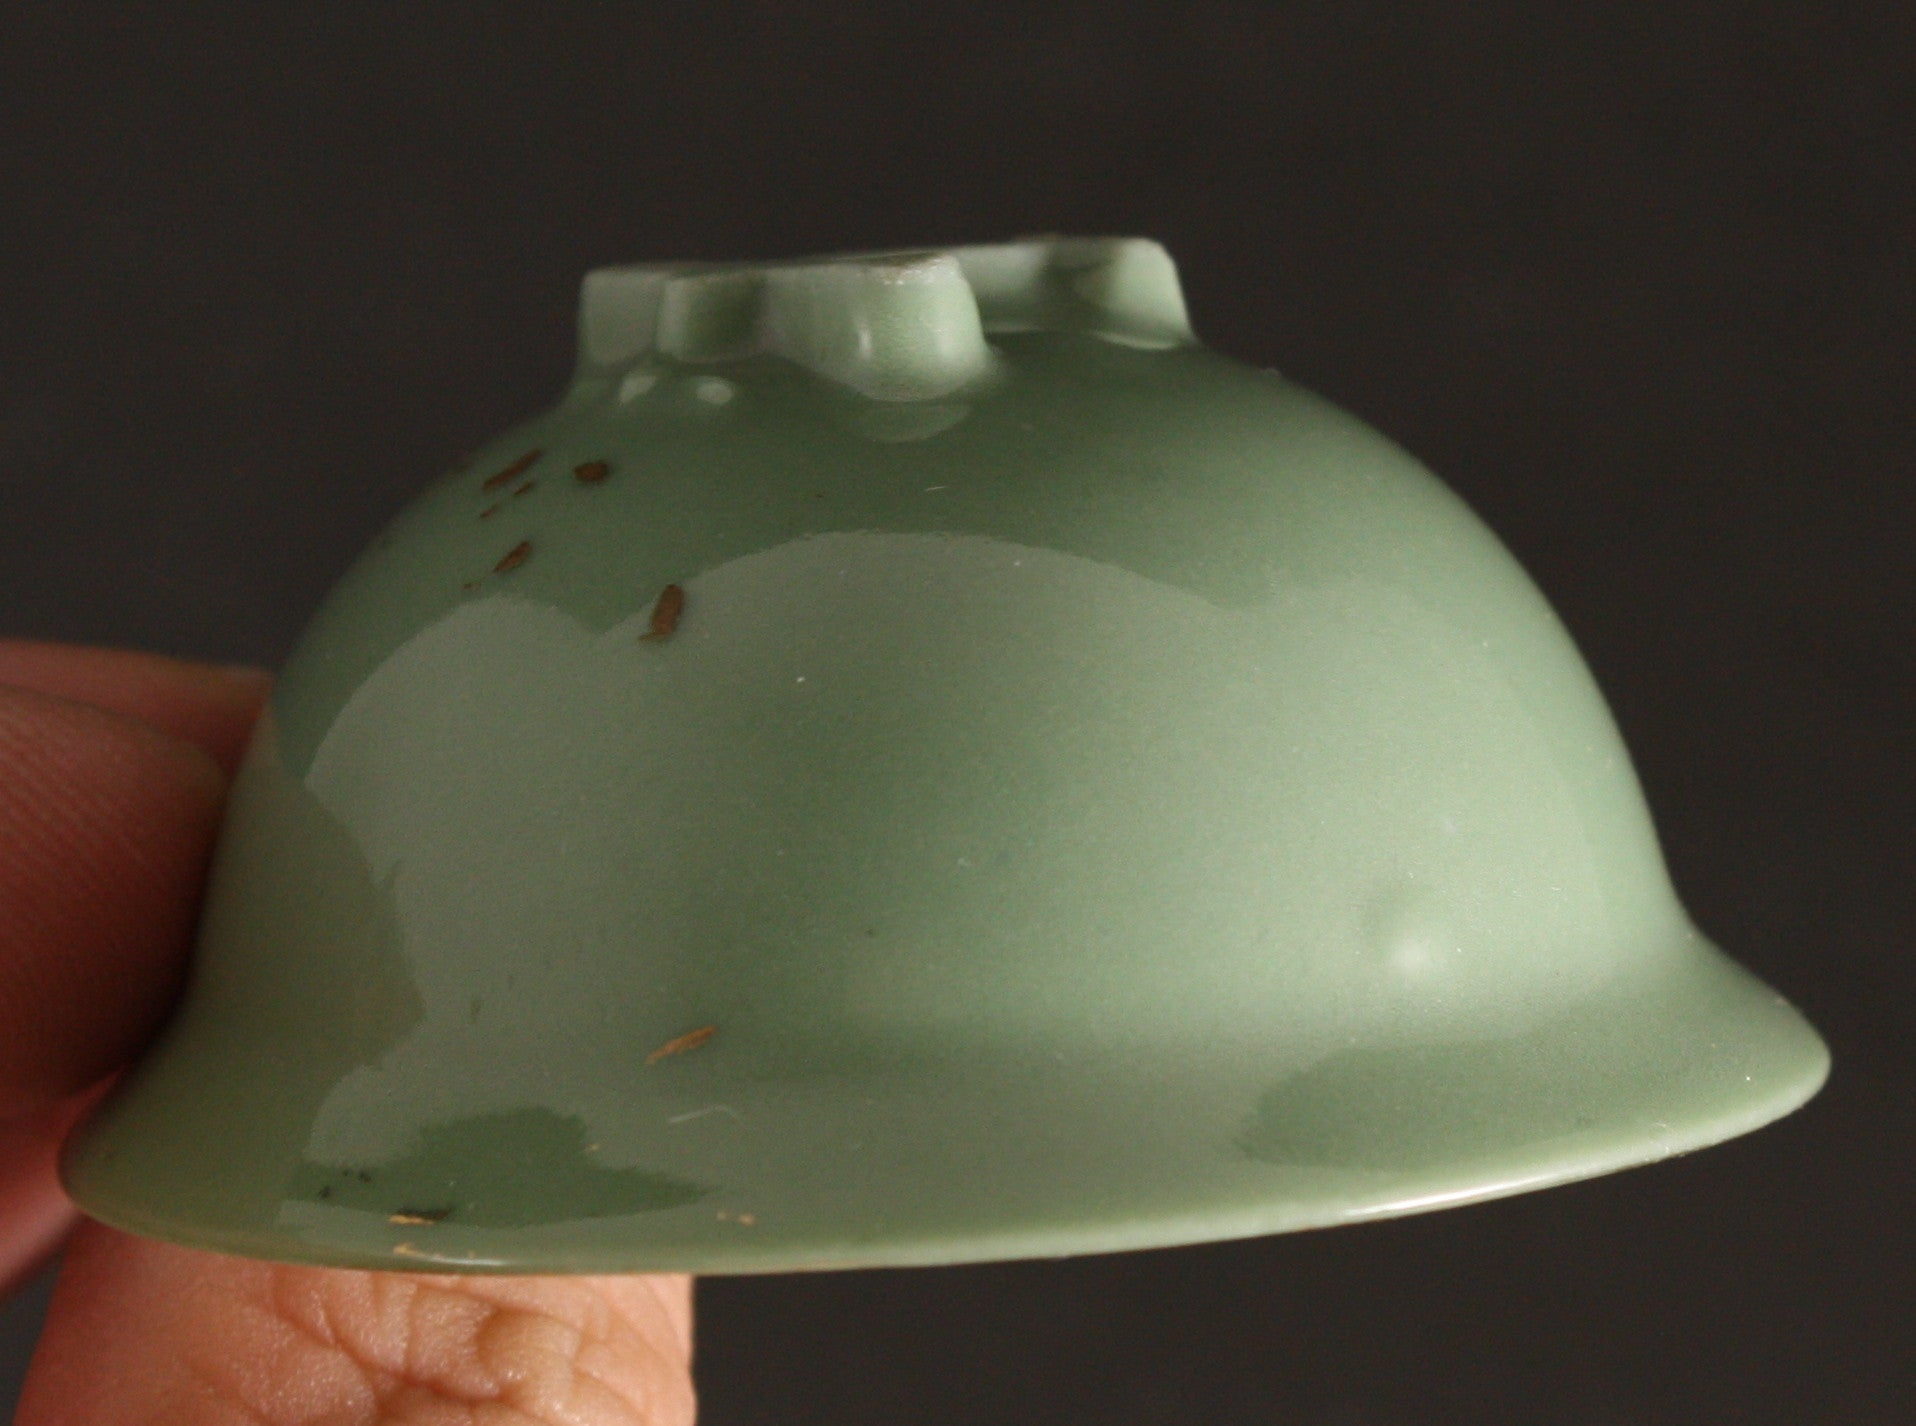 Antique Japanese Military 5th Air Corps Biplane Helmet Shape Sake Cup